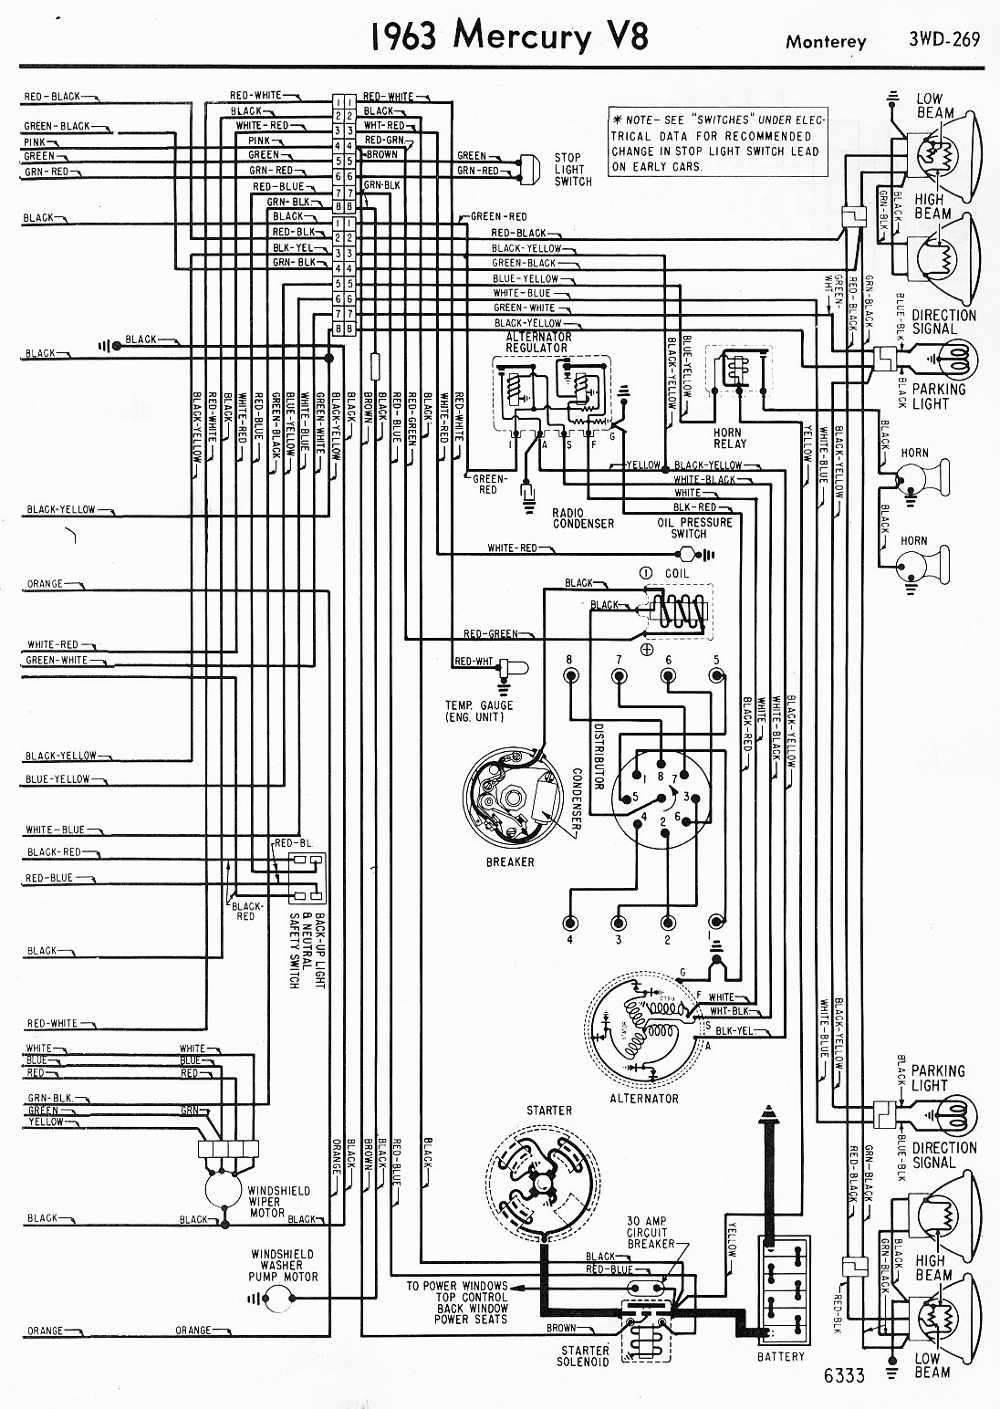 hight resolution of wiring diagrams of 1957 plymouth v8 all models wiring diagram for you wiring diagrams of 1959 mercury v8 all models